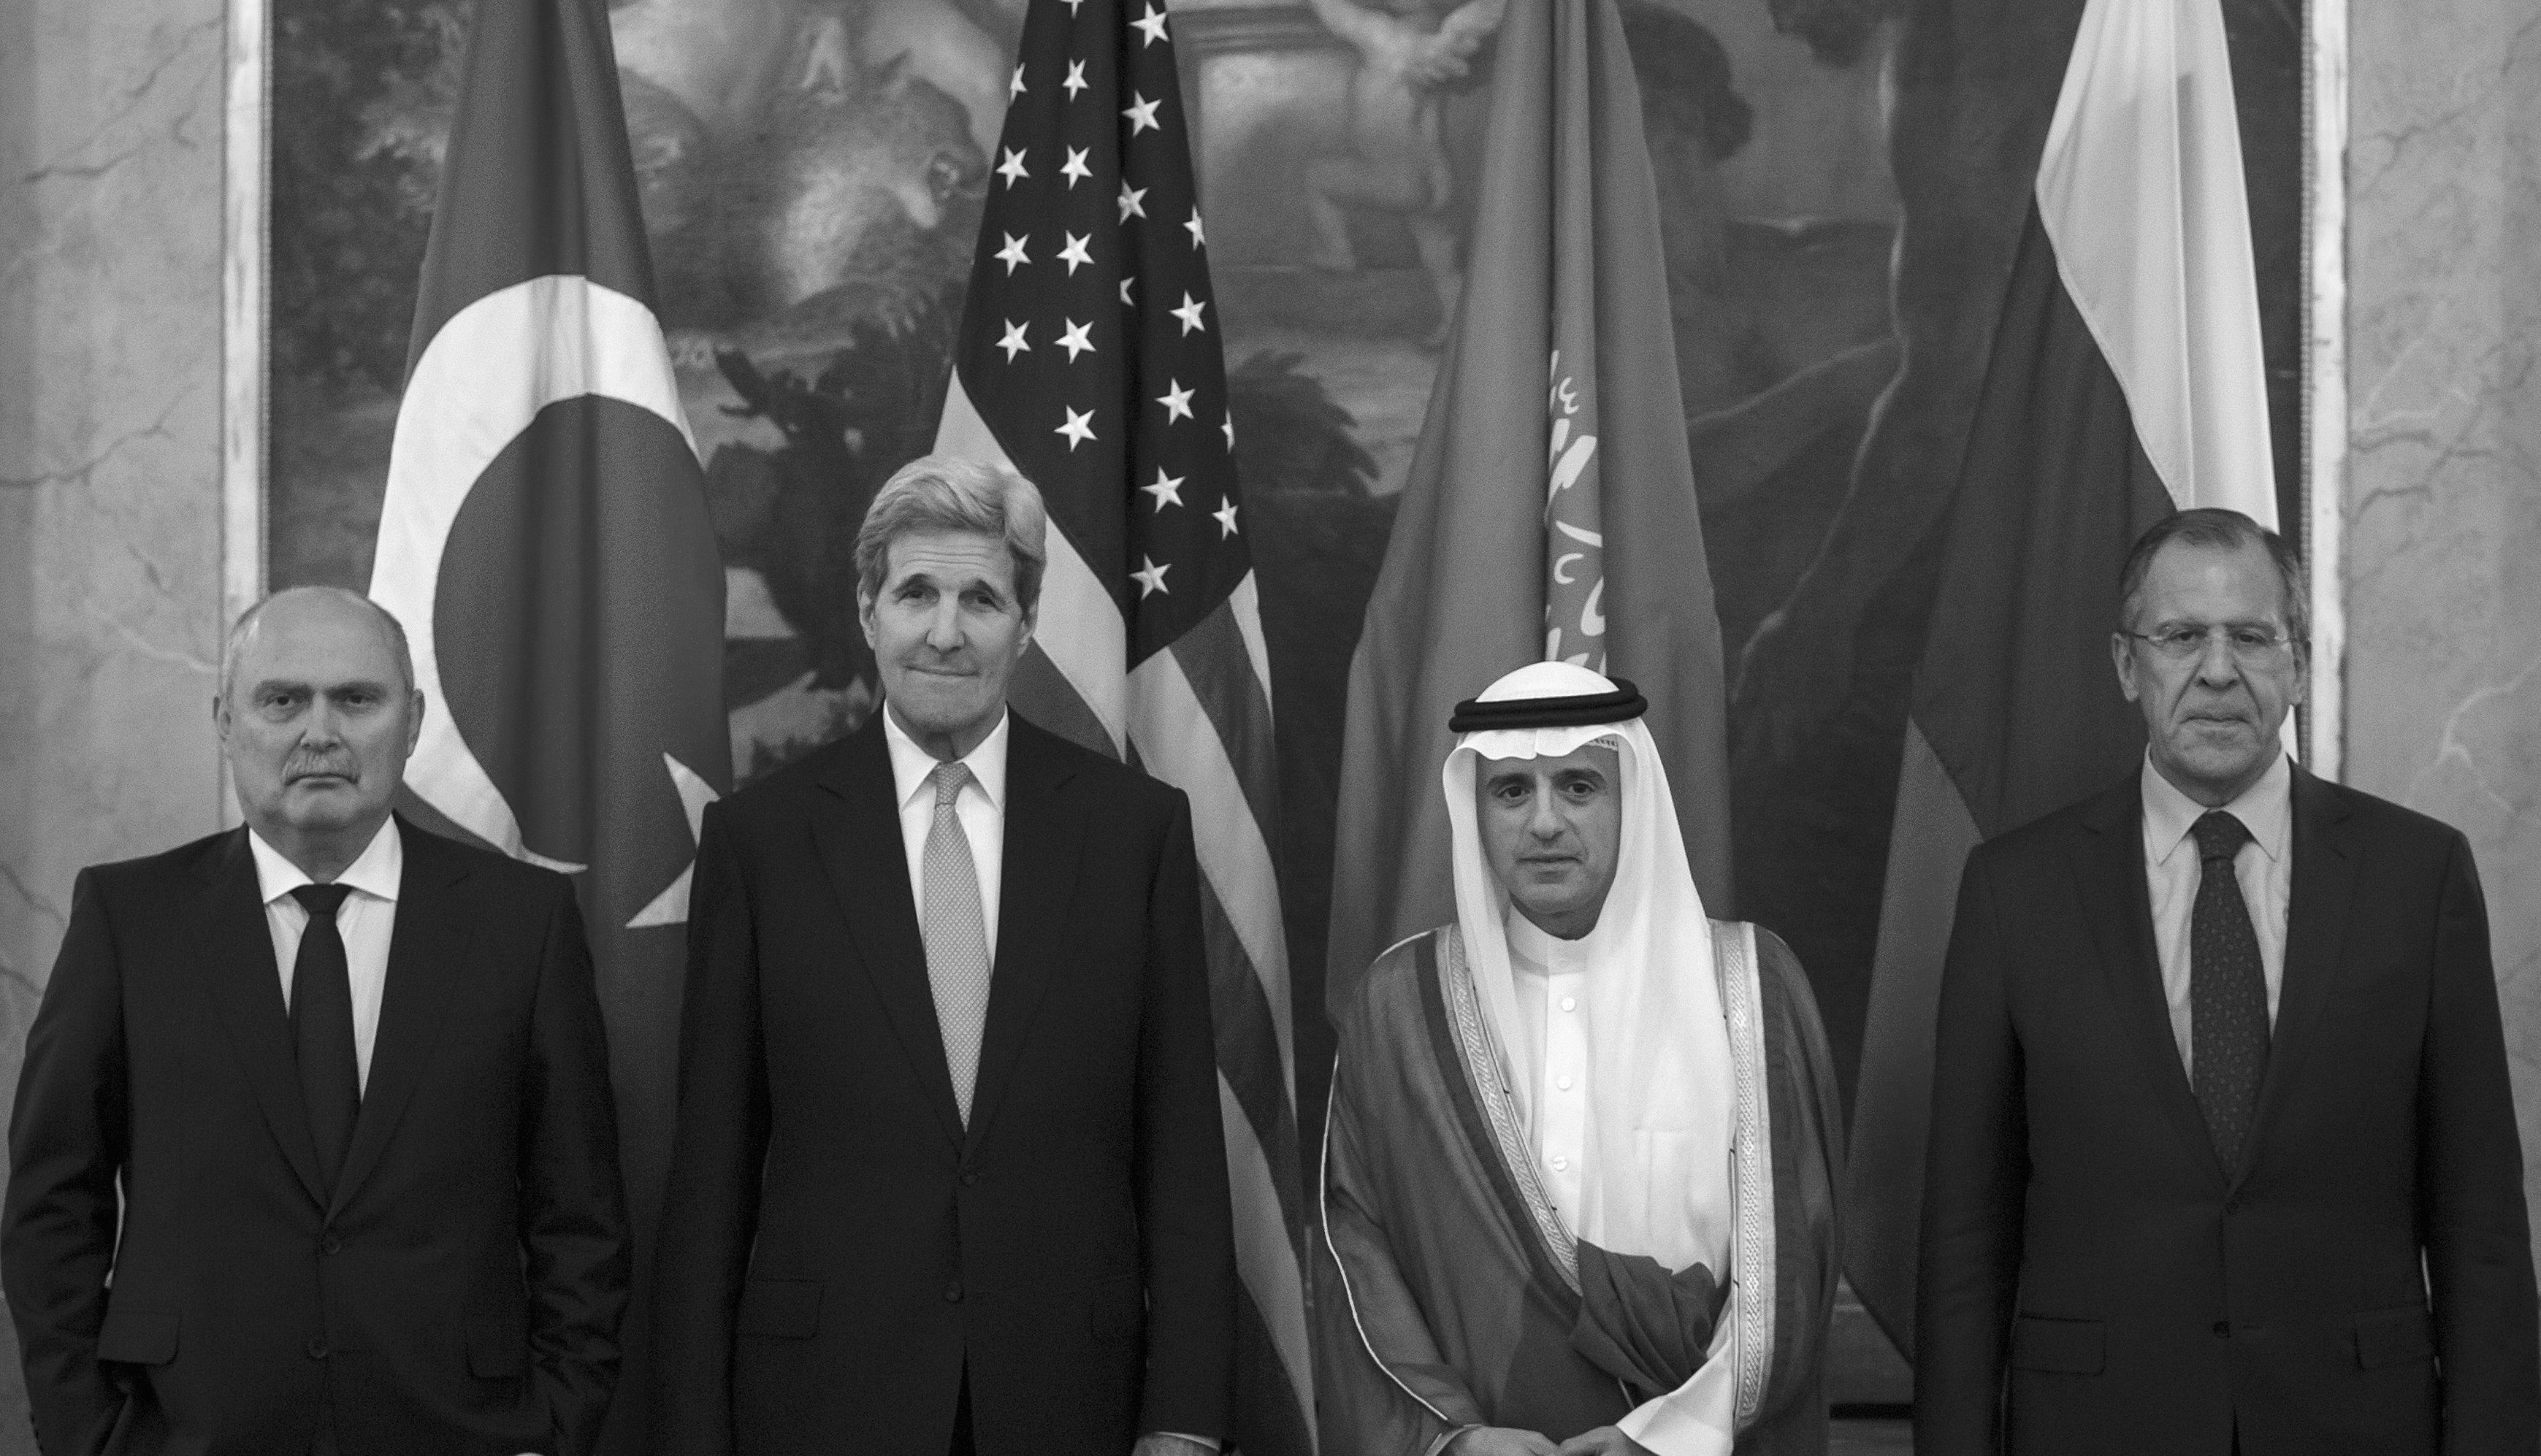 Turkish Foreign Minister Feridun Sinirlioglu (L), U.S. Secretary of State John Kerry (2nd L), Saudi Foreign Minister Adel al-Jubeir (3rd L) and Russian Foreign Minister Sergey Lavrov pose during a photo opportunity before a meeting in Vienna, October 23, 2015. REUTERS/Carlo Allegri